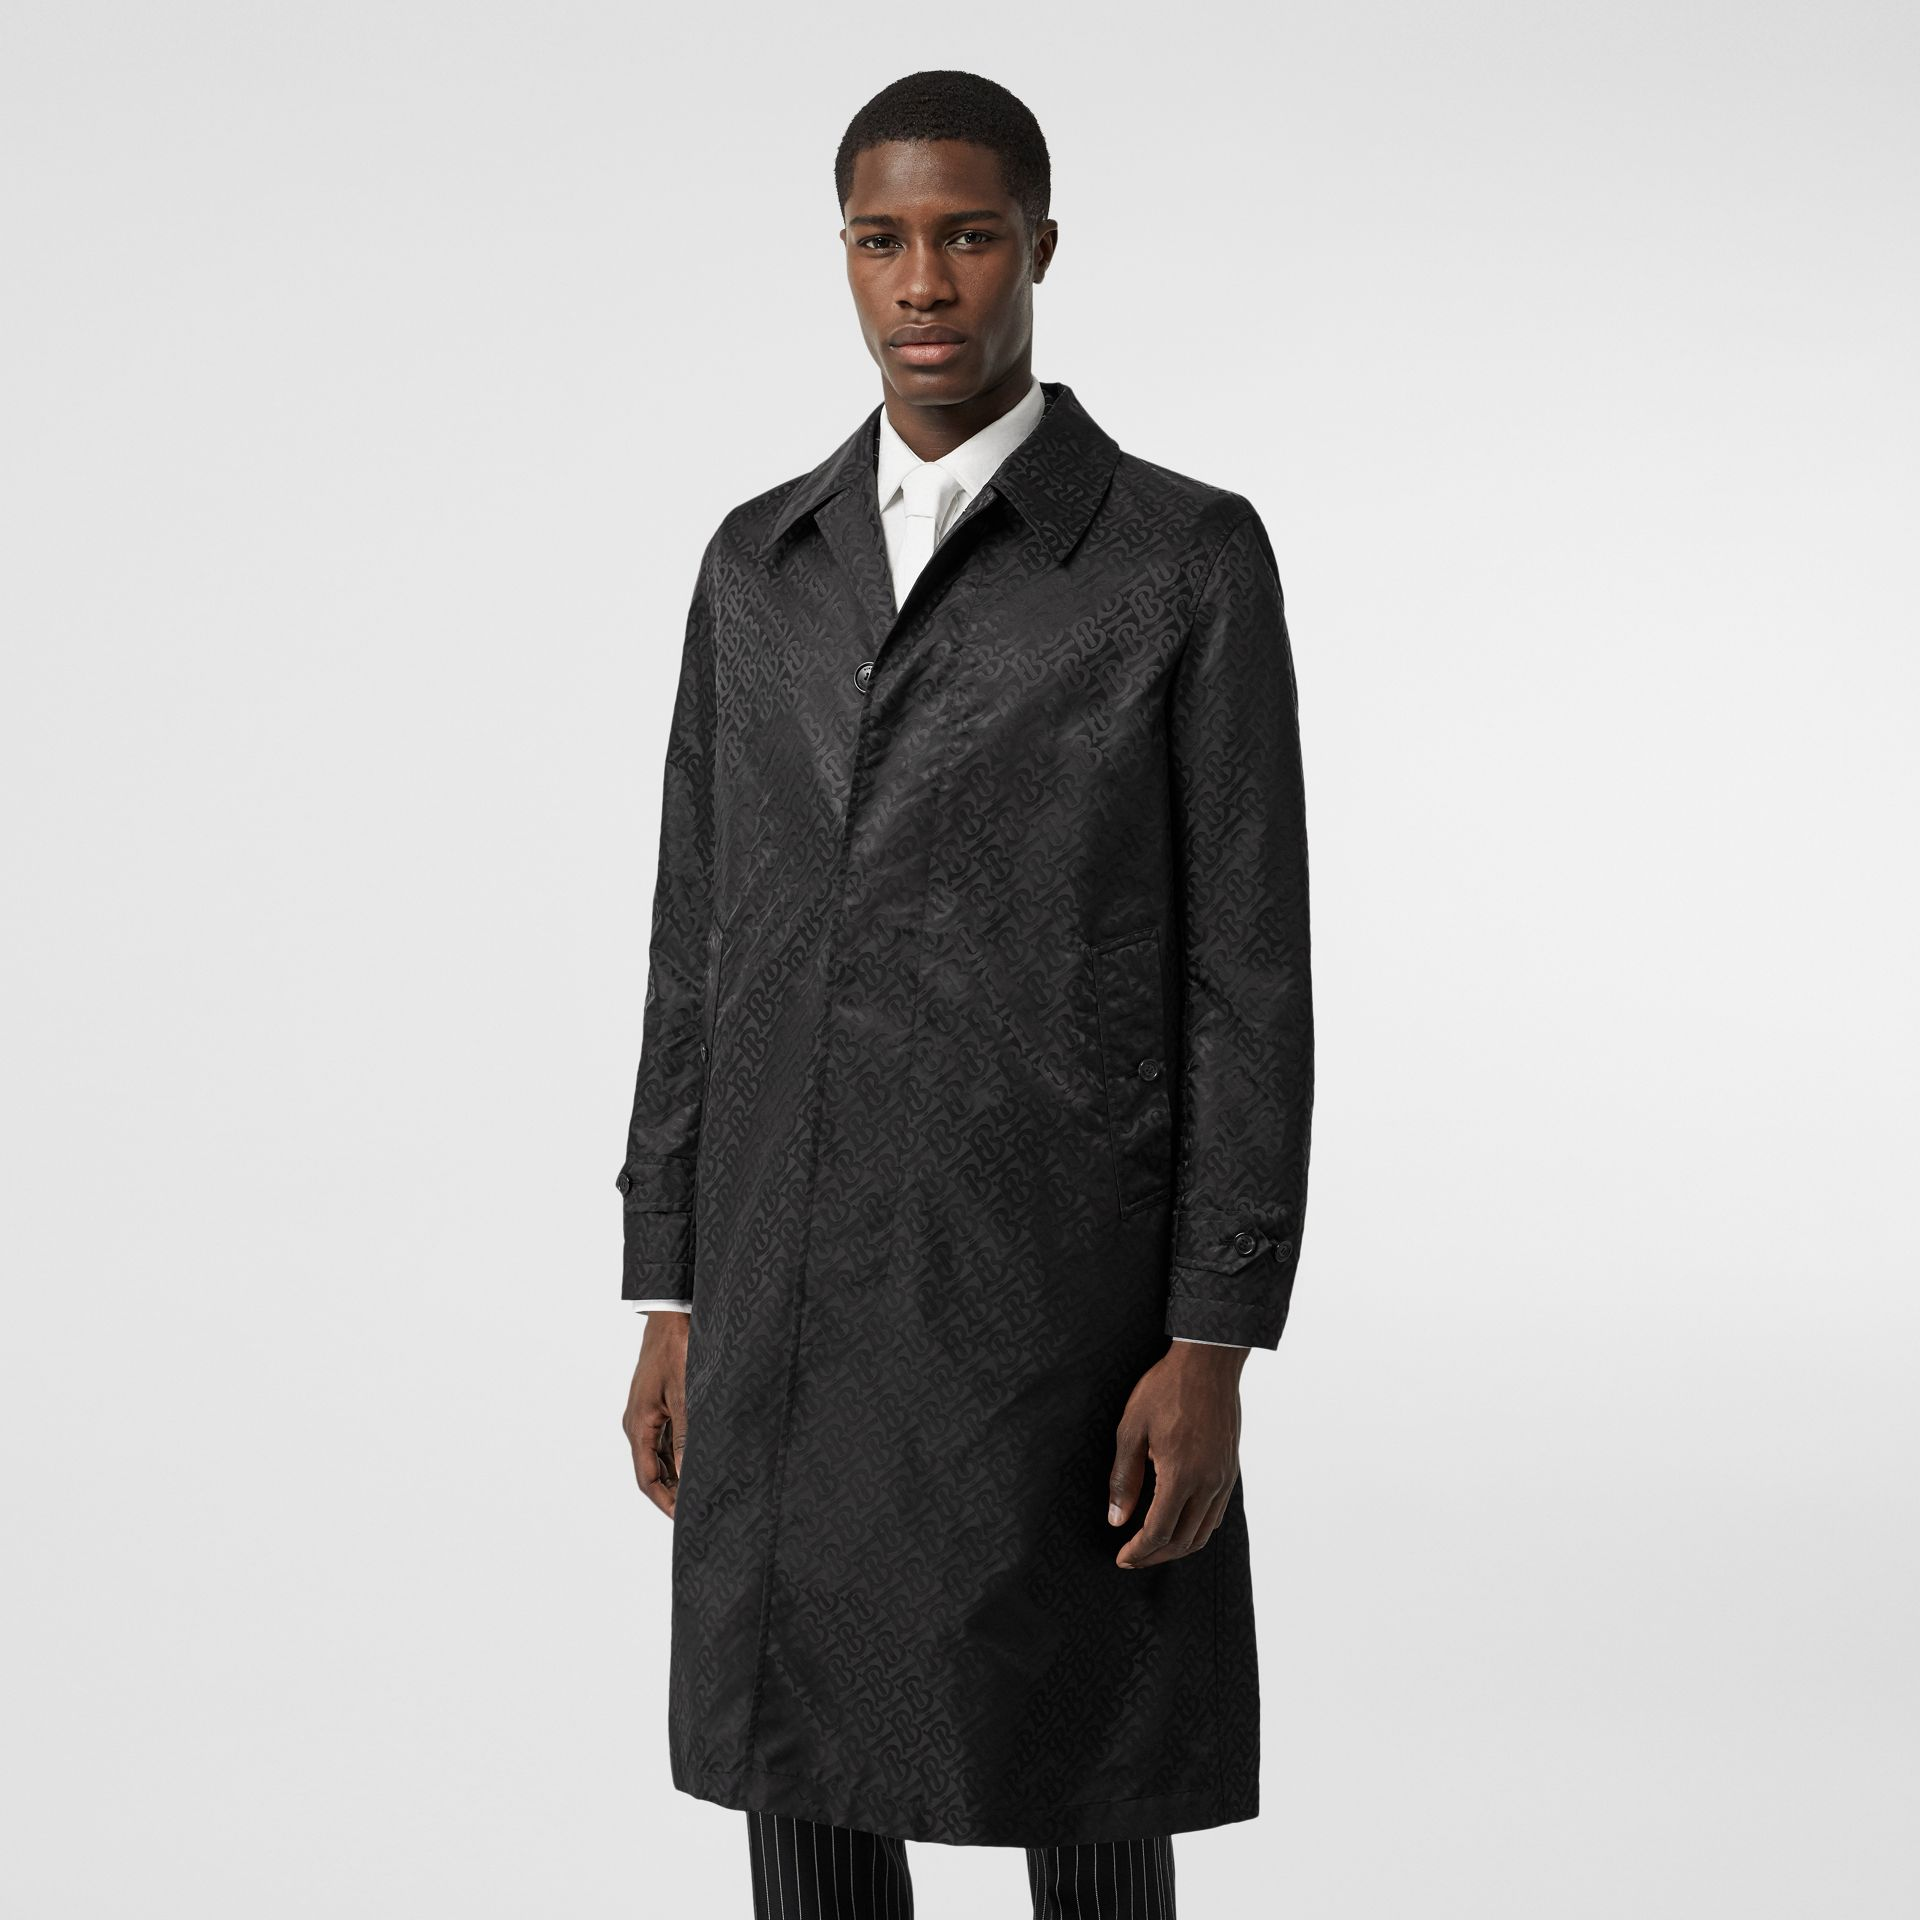 Monogram ECONYL® Jacquard Car Coat in Black | Burberry - gallery image 5